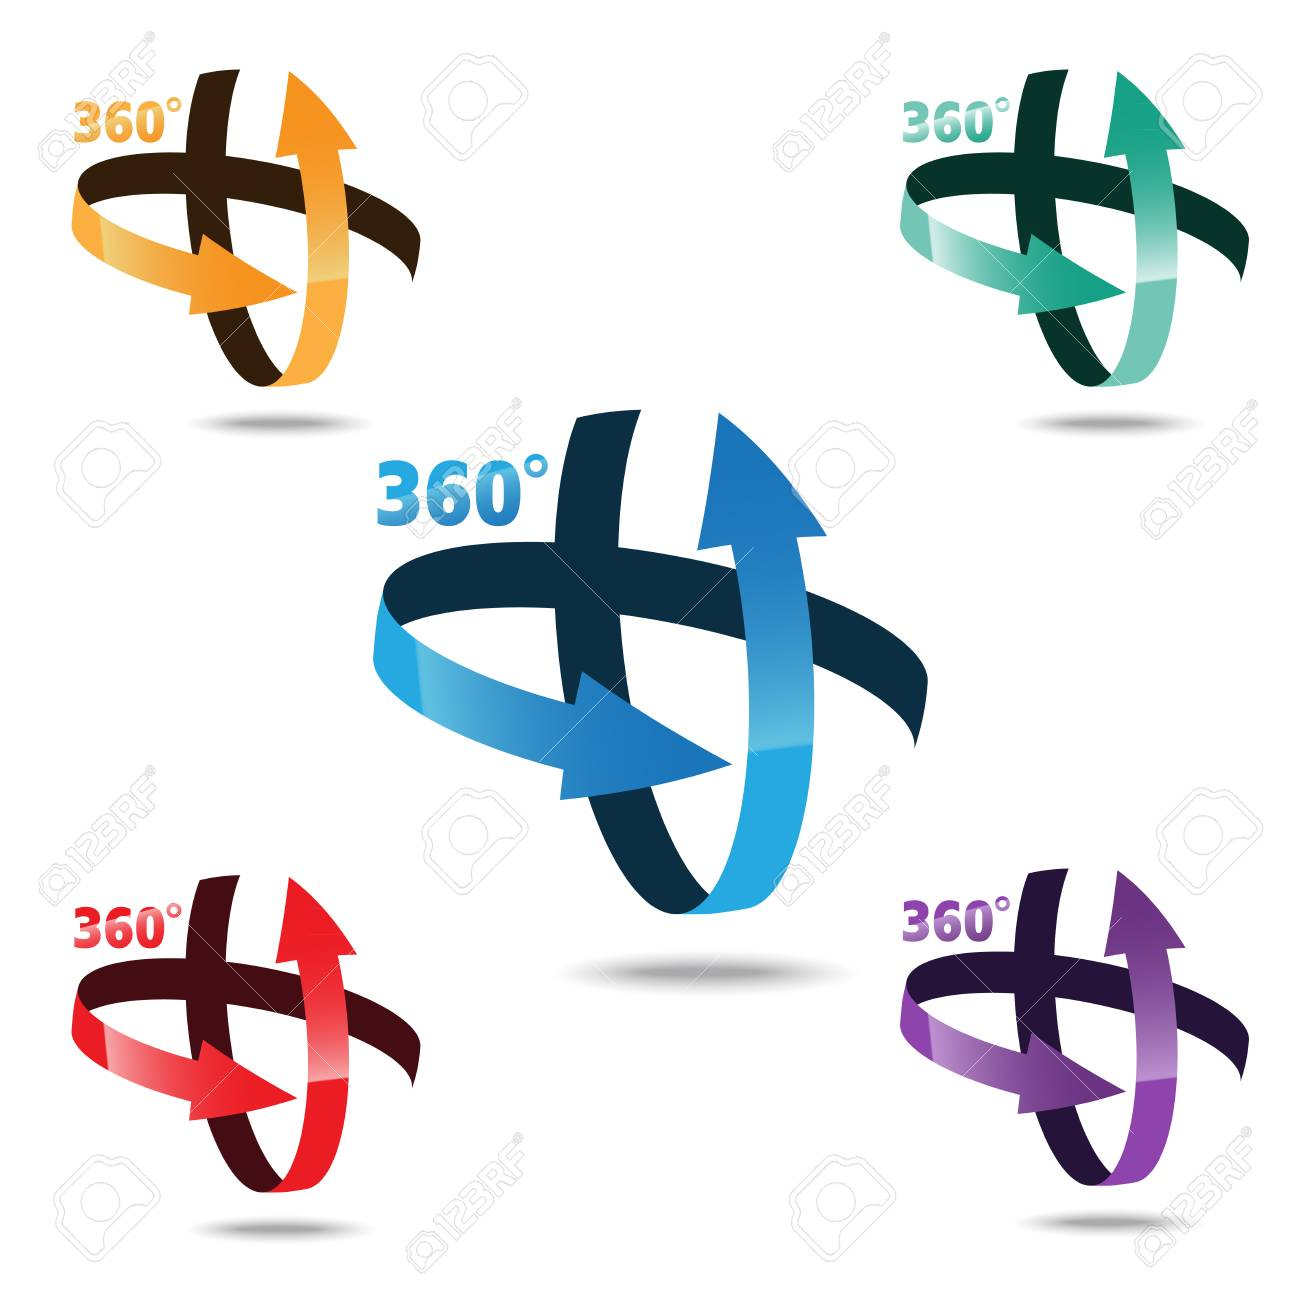 Angle 360 Degrees Sign Icon Geometry Math Symbol Royalty Free